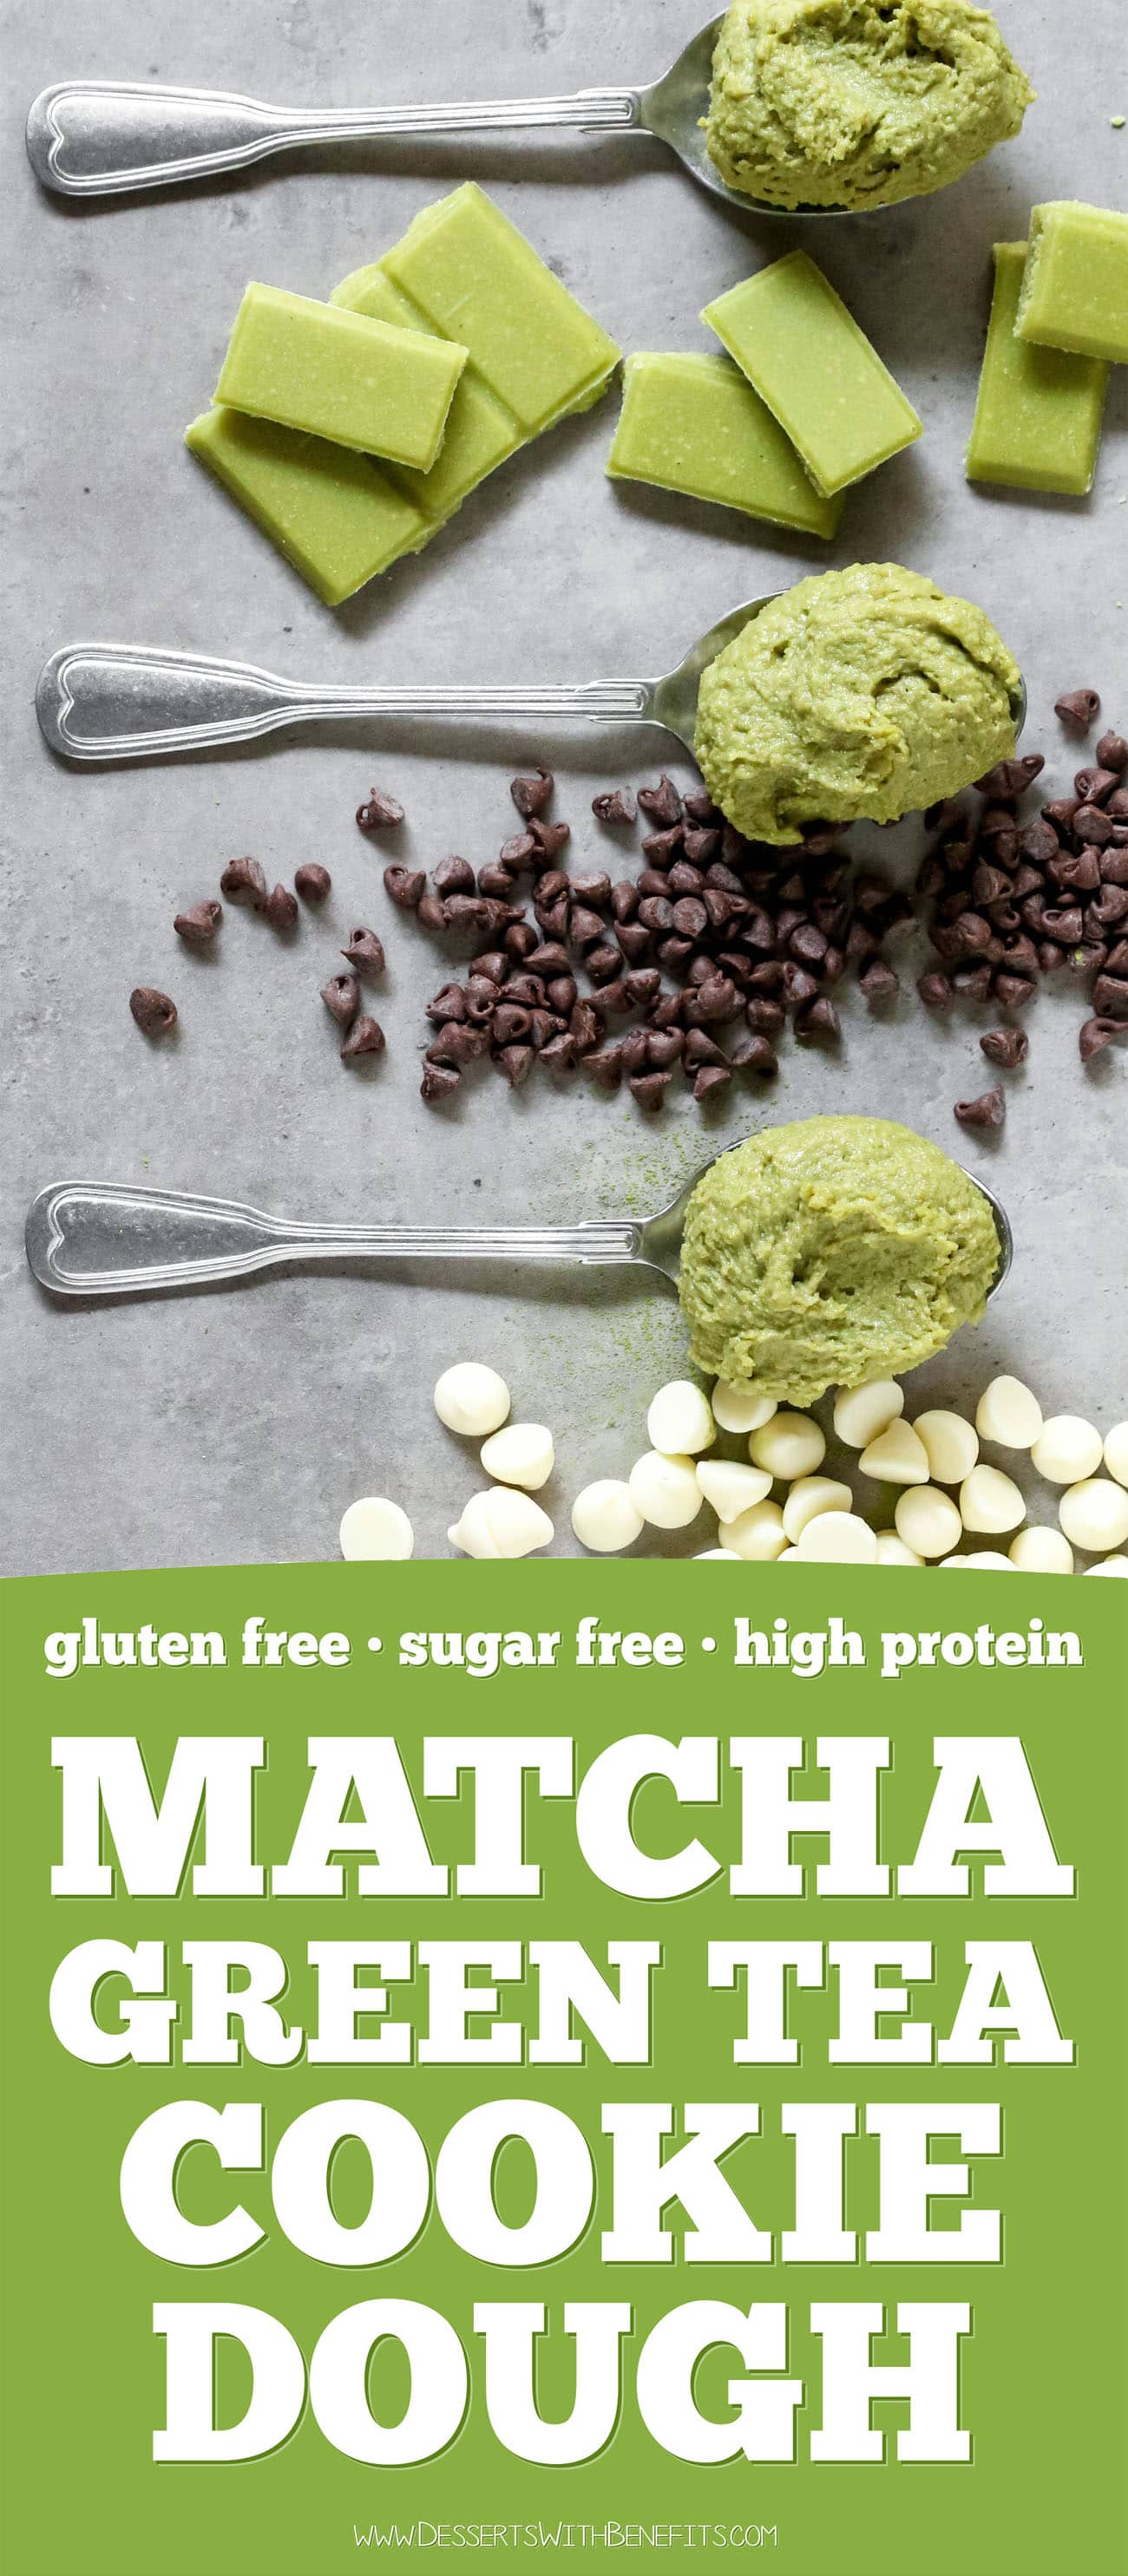 This Matcha Green Tea Cookie Dough is fudgy, sweet, and sinful-tasting, yet it's healthy! Made with nut butter, oats, protein powder (optional), and a secret ingredient. You'd never know this is sugar free, gluten free, high protein, and high fiber too!